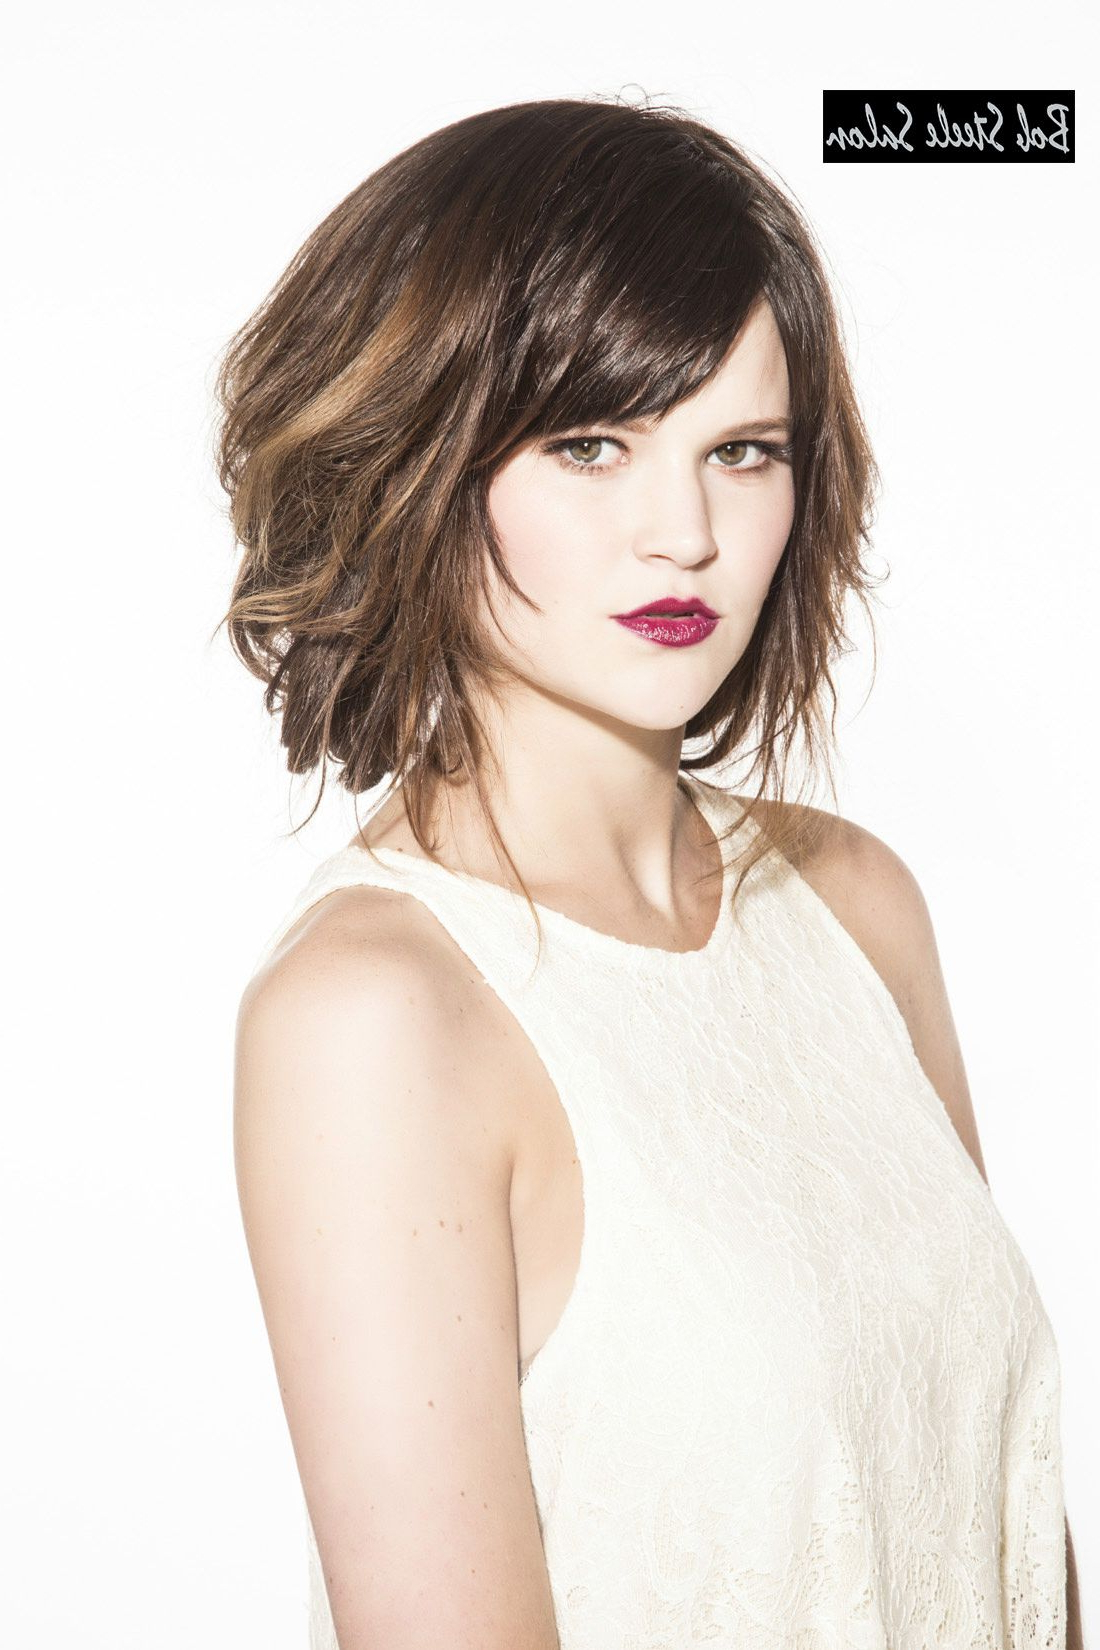 34 Greatest Short Haircuts And Hairstyles For Thick Hair For 2018 Intended For Medium Short Haircuts For Thick Hair (View 7 of 25)